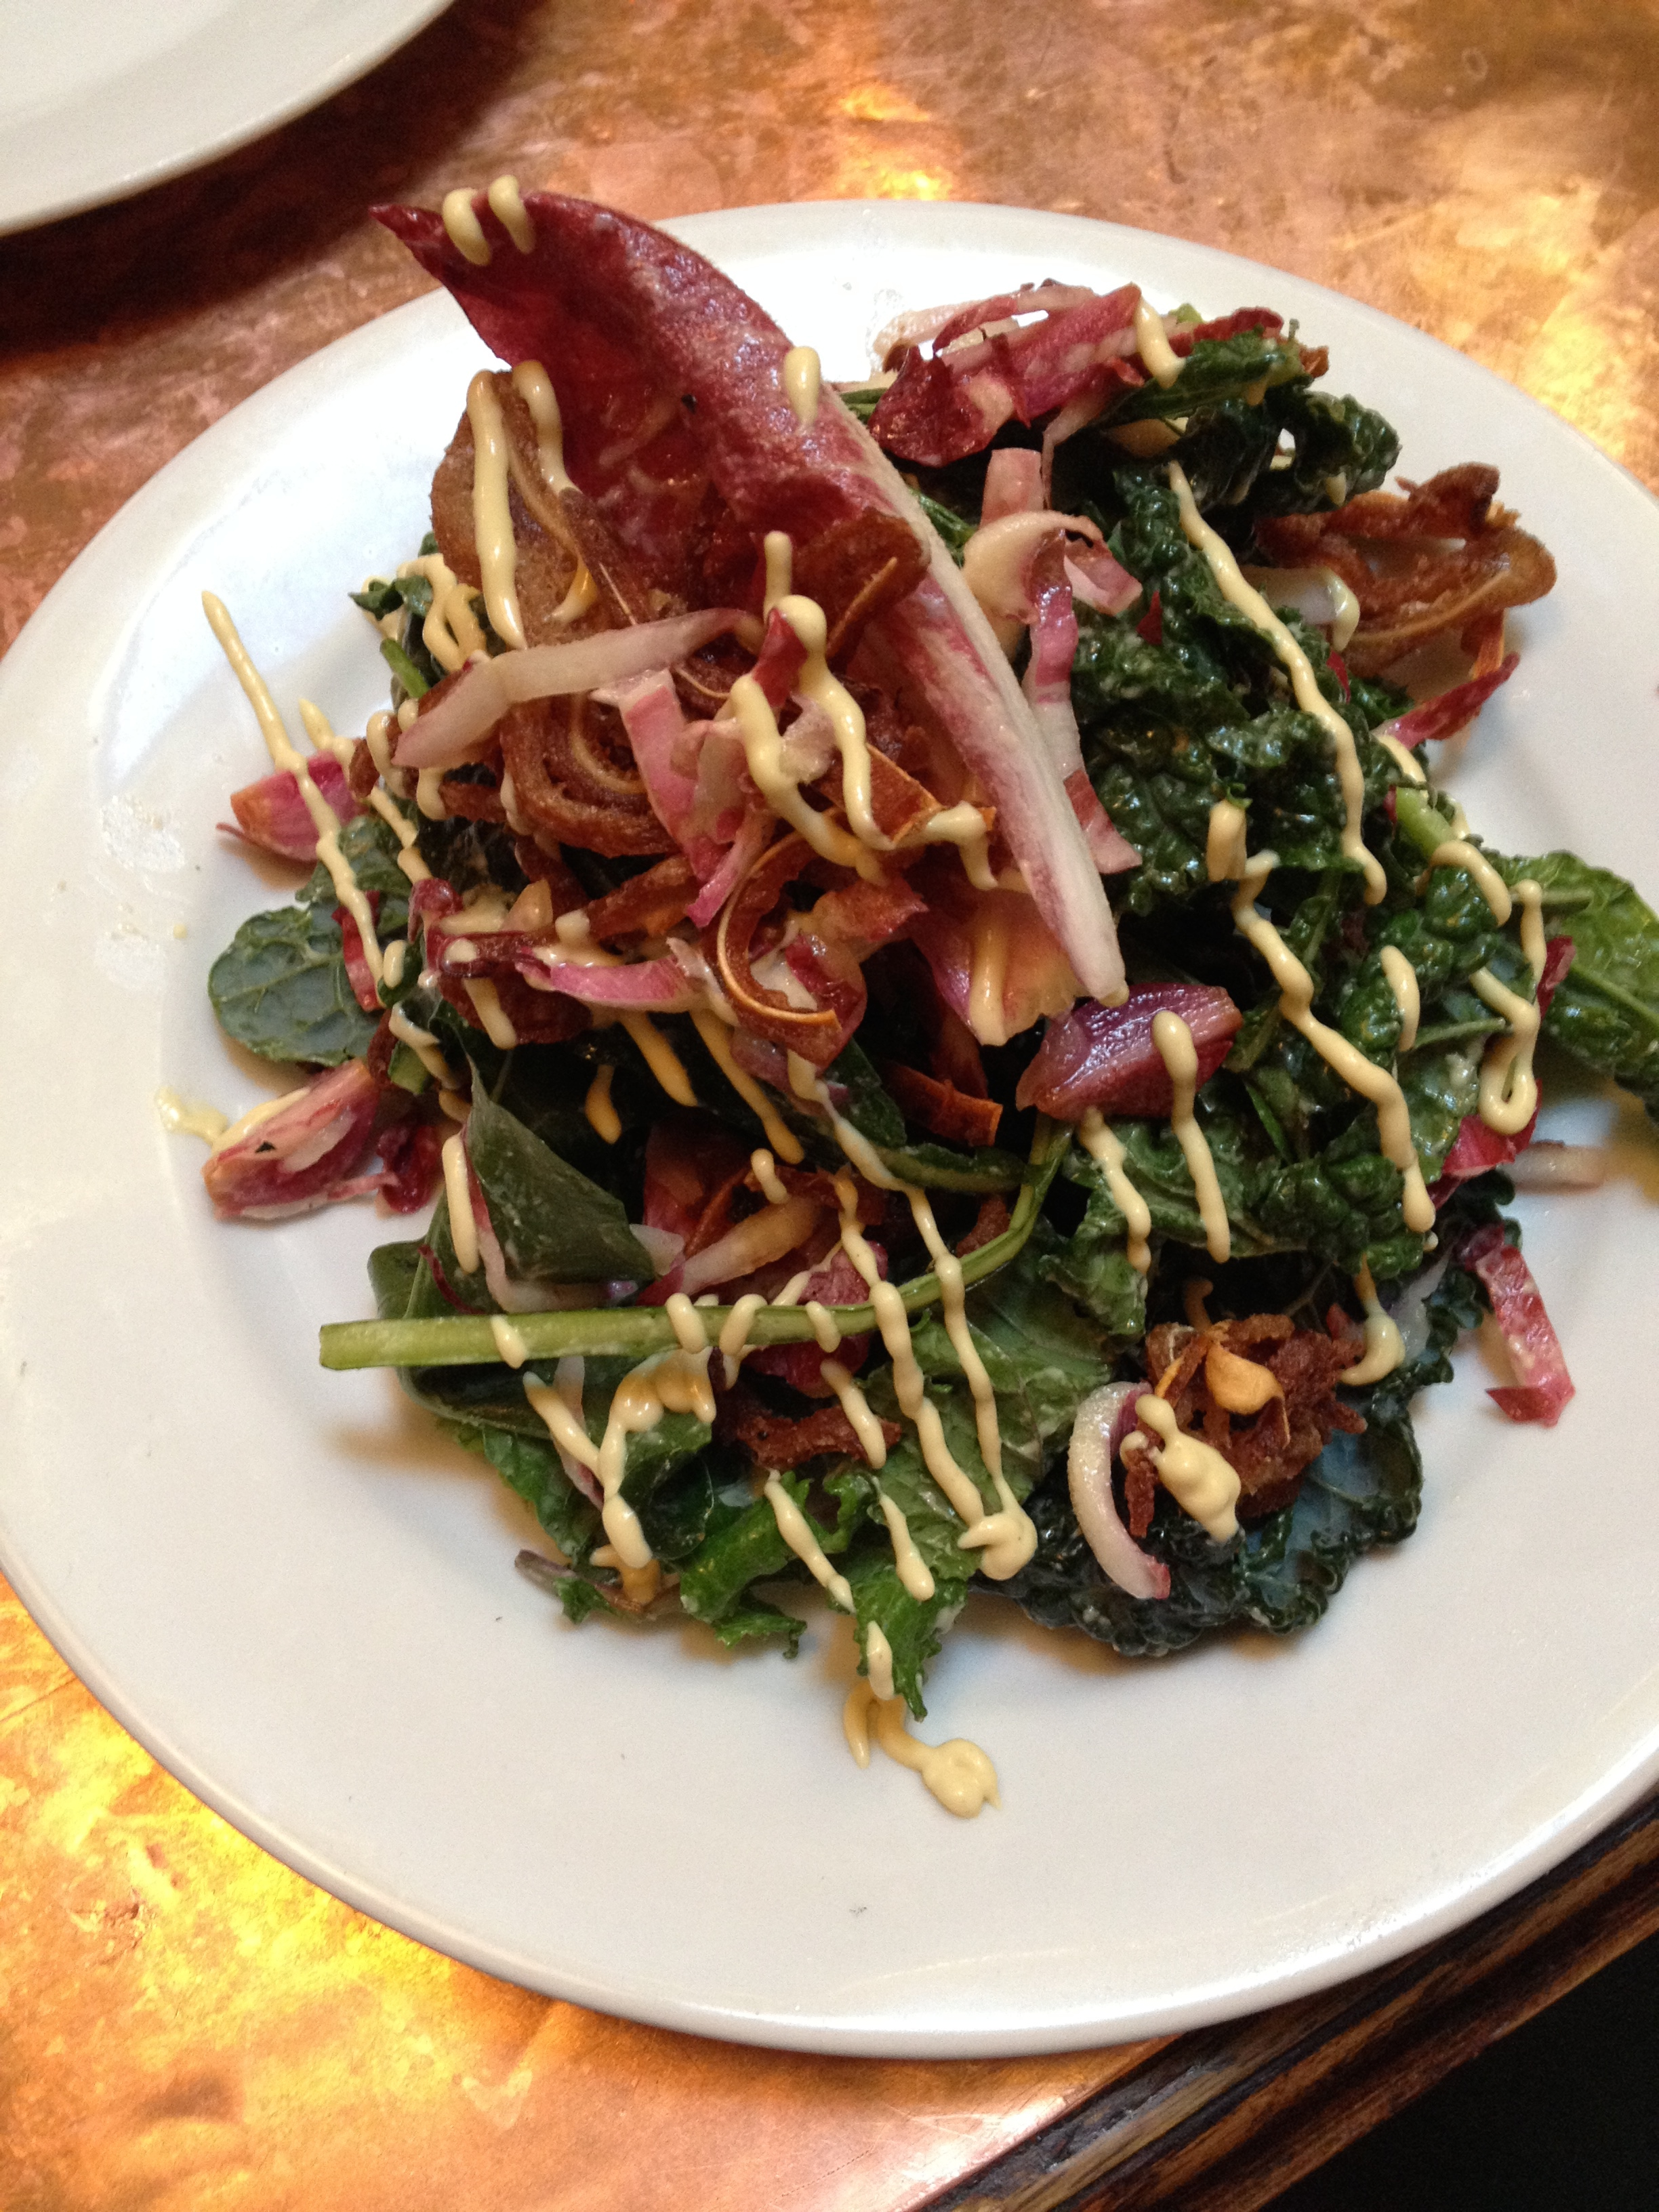 Crispy Pig's Ear Salad with young kale, endive, pickled onions, and mustard dressing